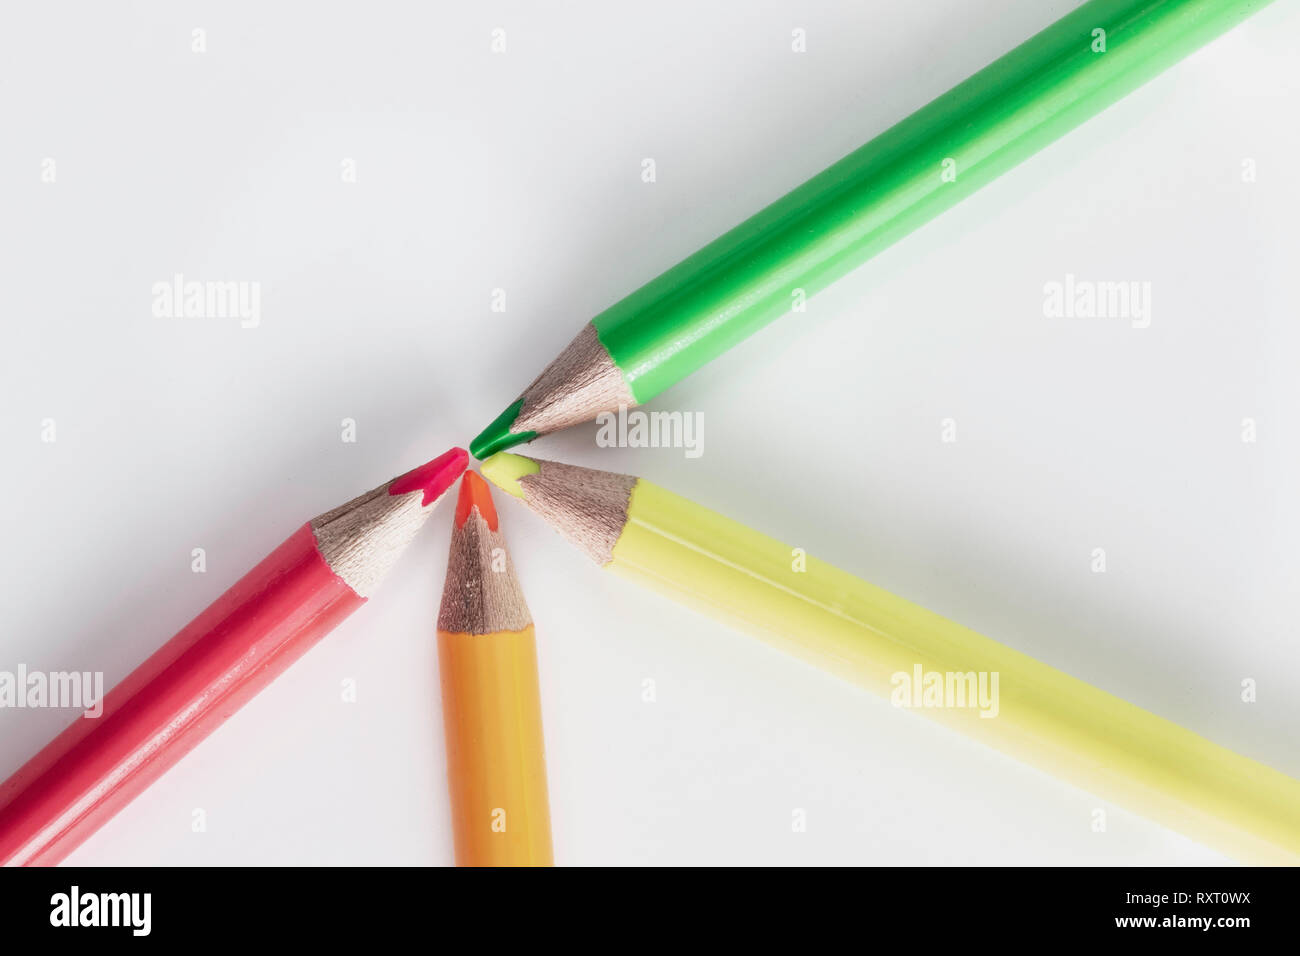 Four neon pencils crayons laid out on a white background - Stock Image